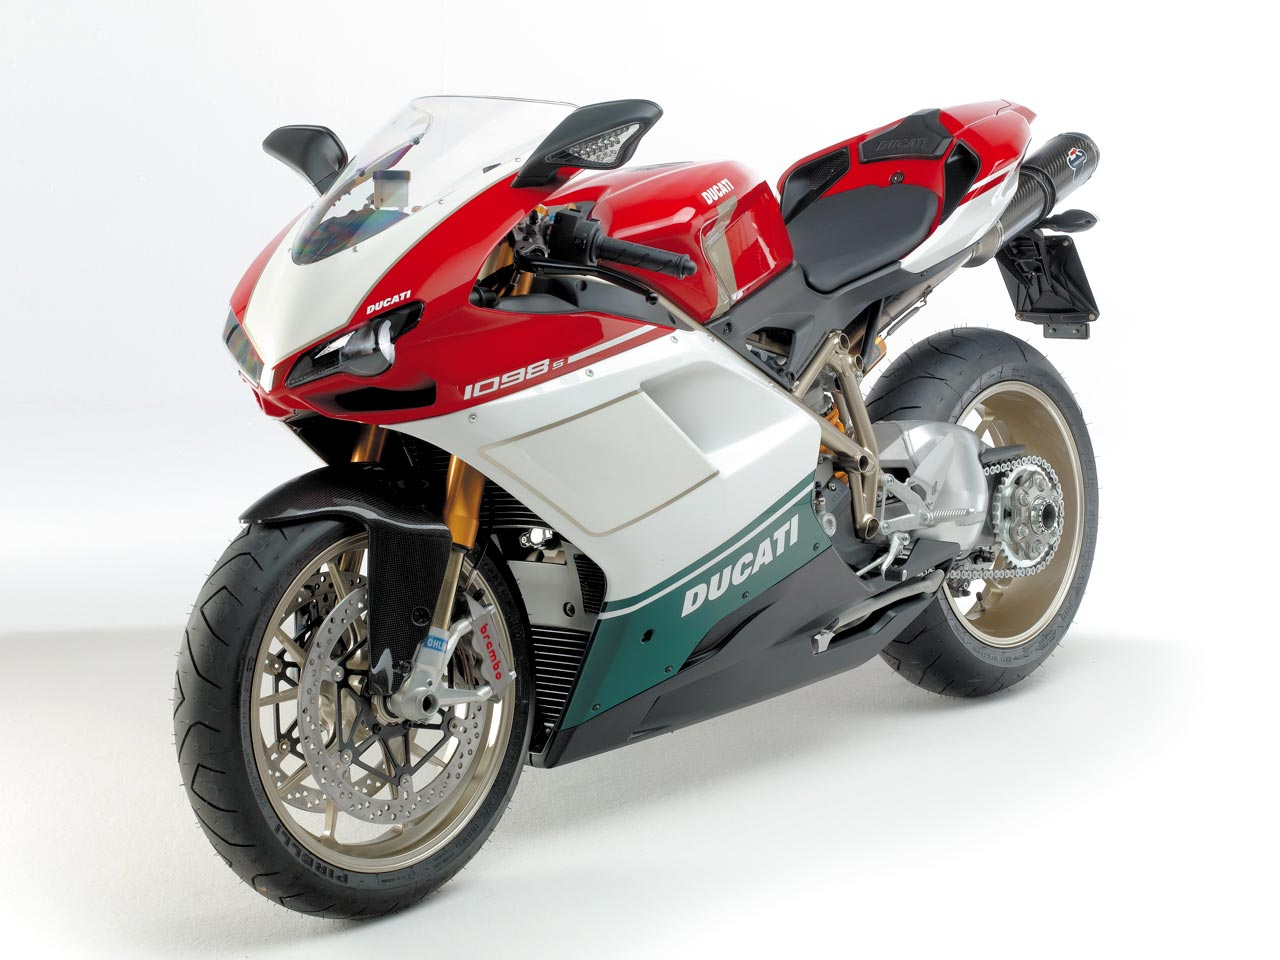 Ducati Superbike 1098 S Tricolore 2007 wallpapers #12036